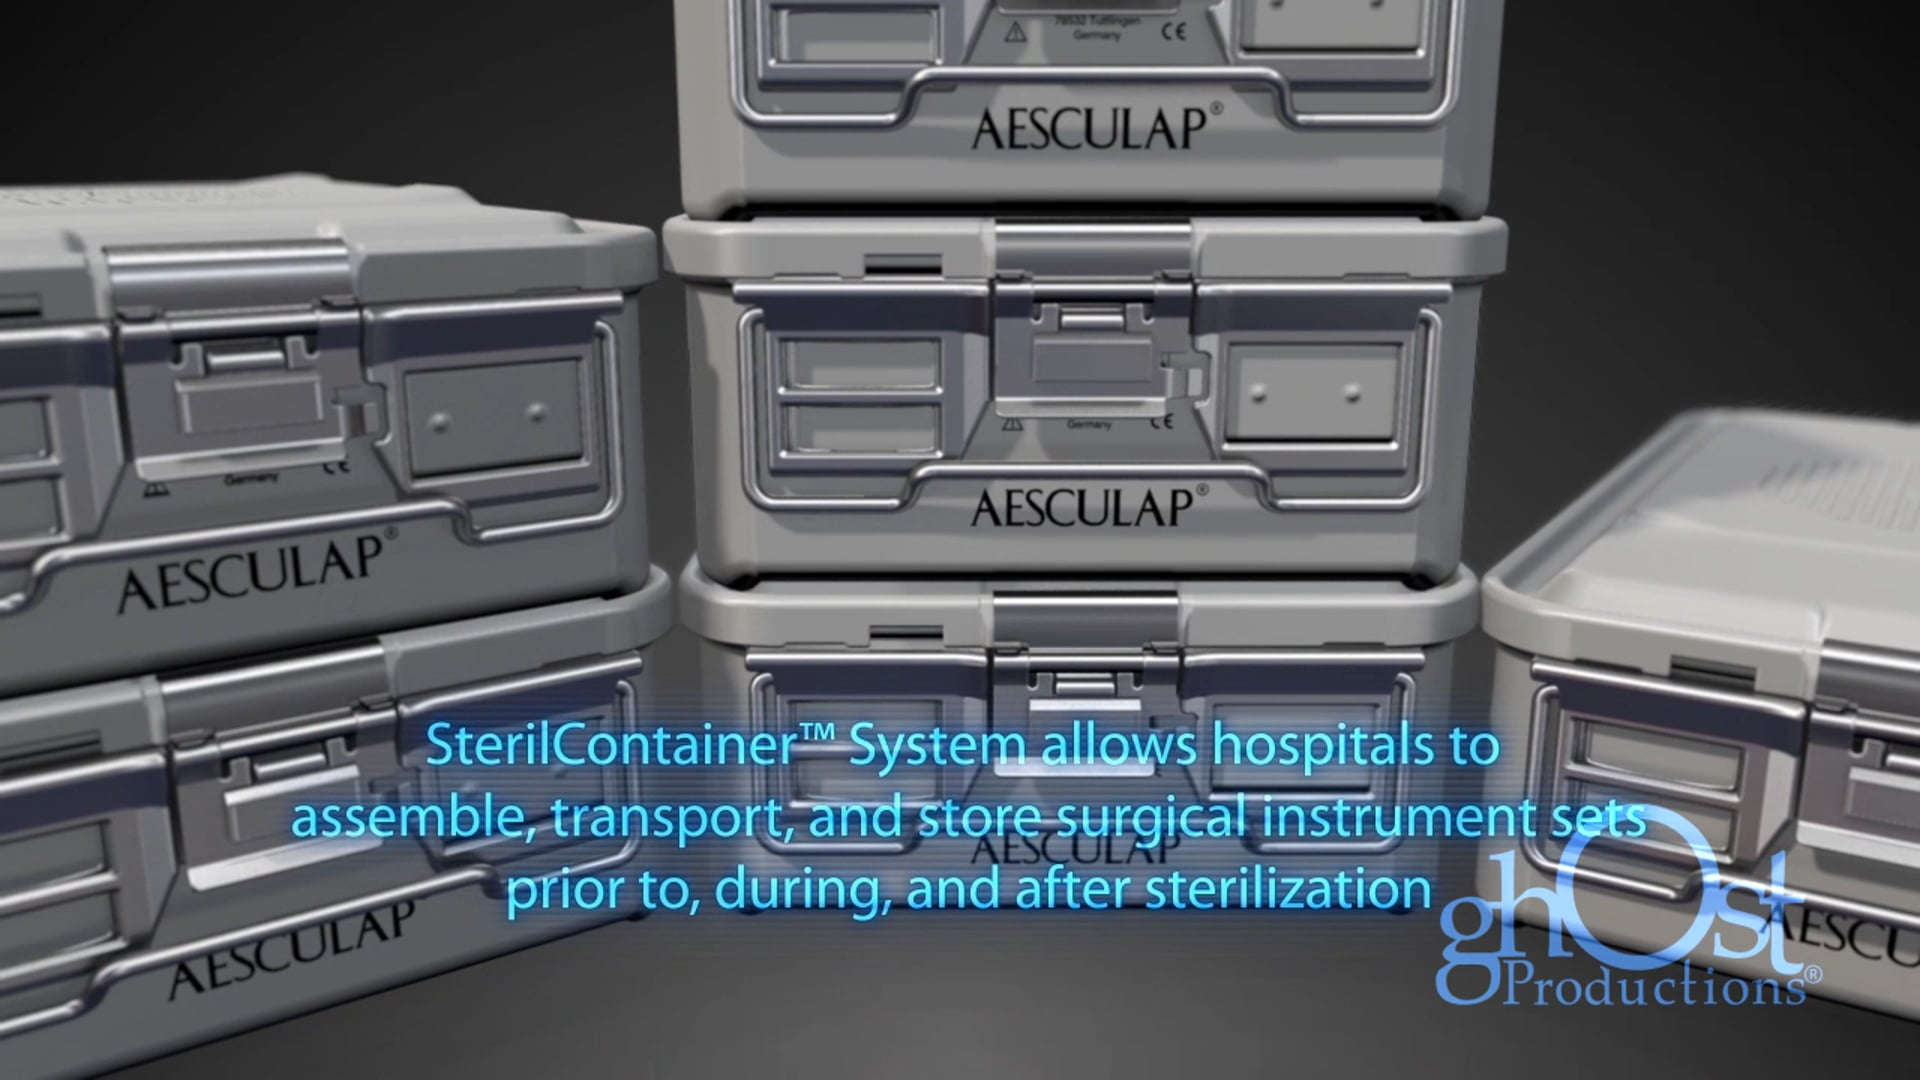 Aesculap Sterile Container